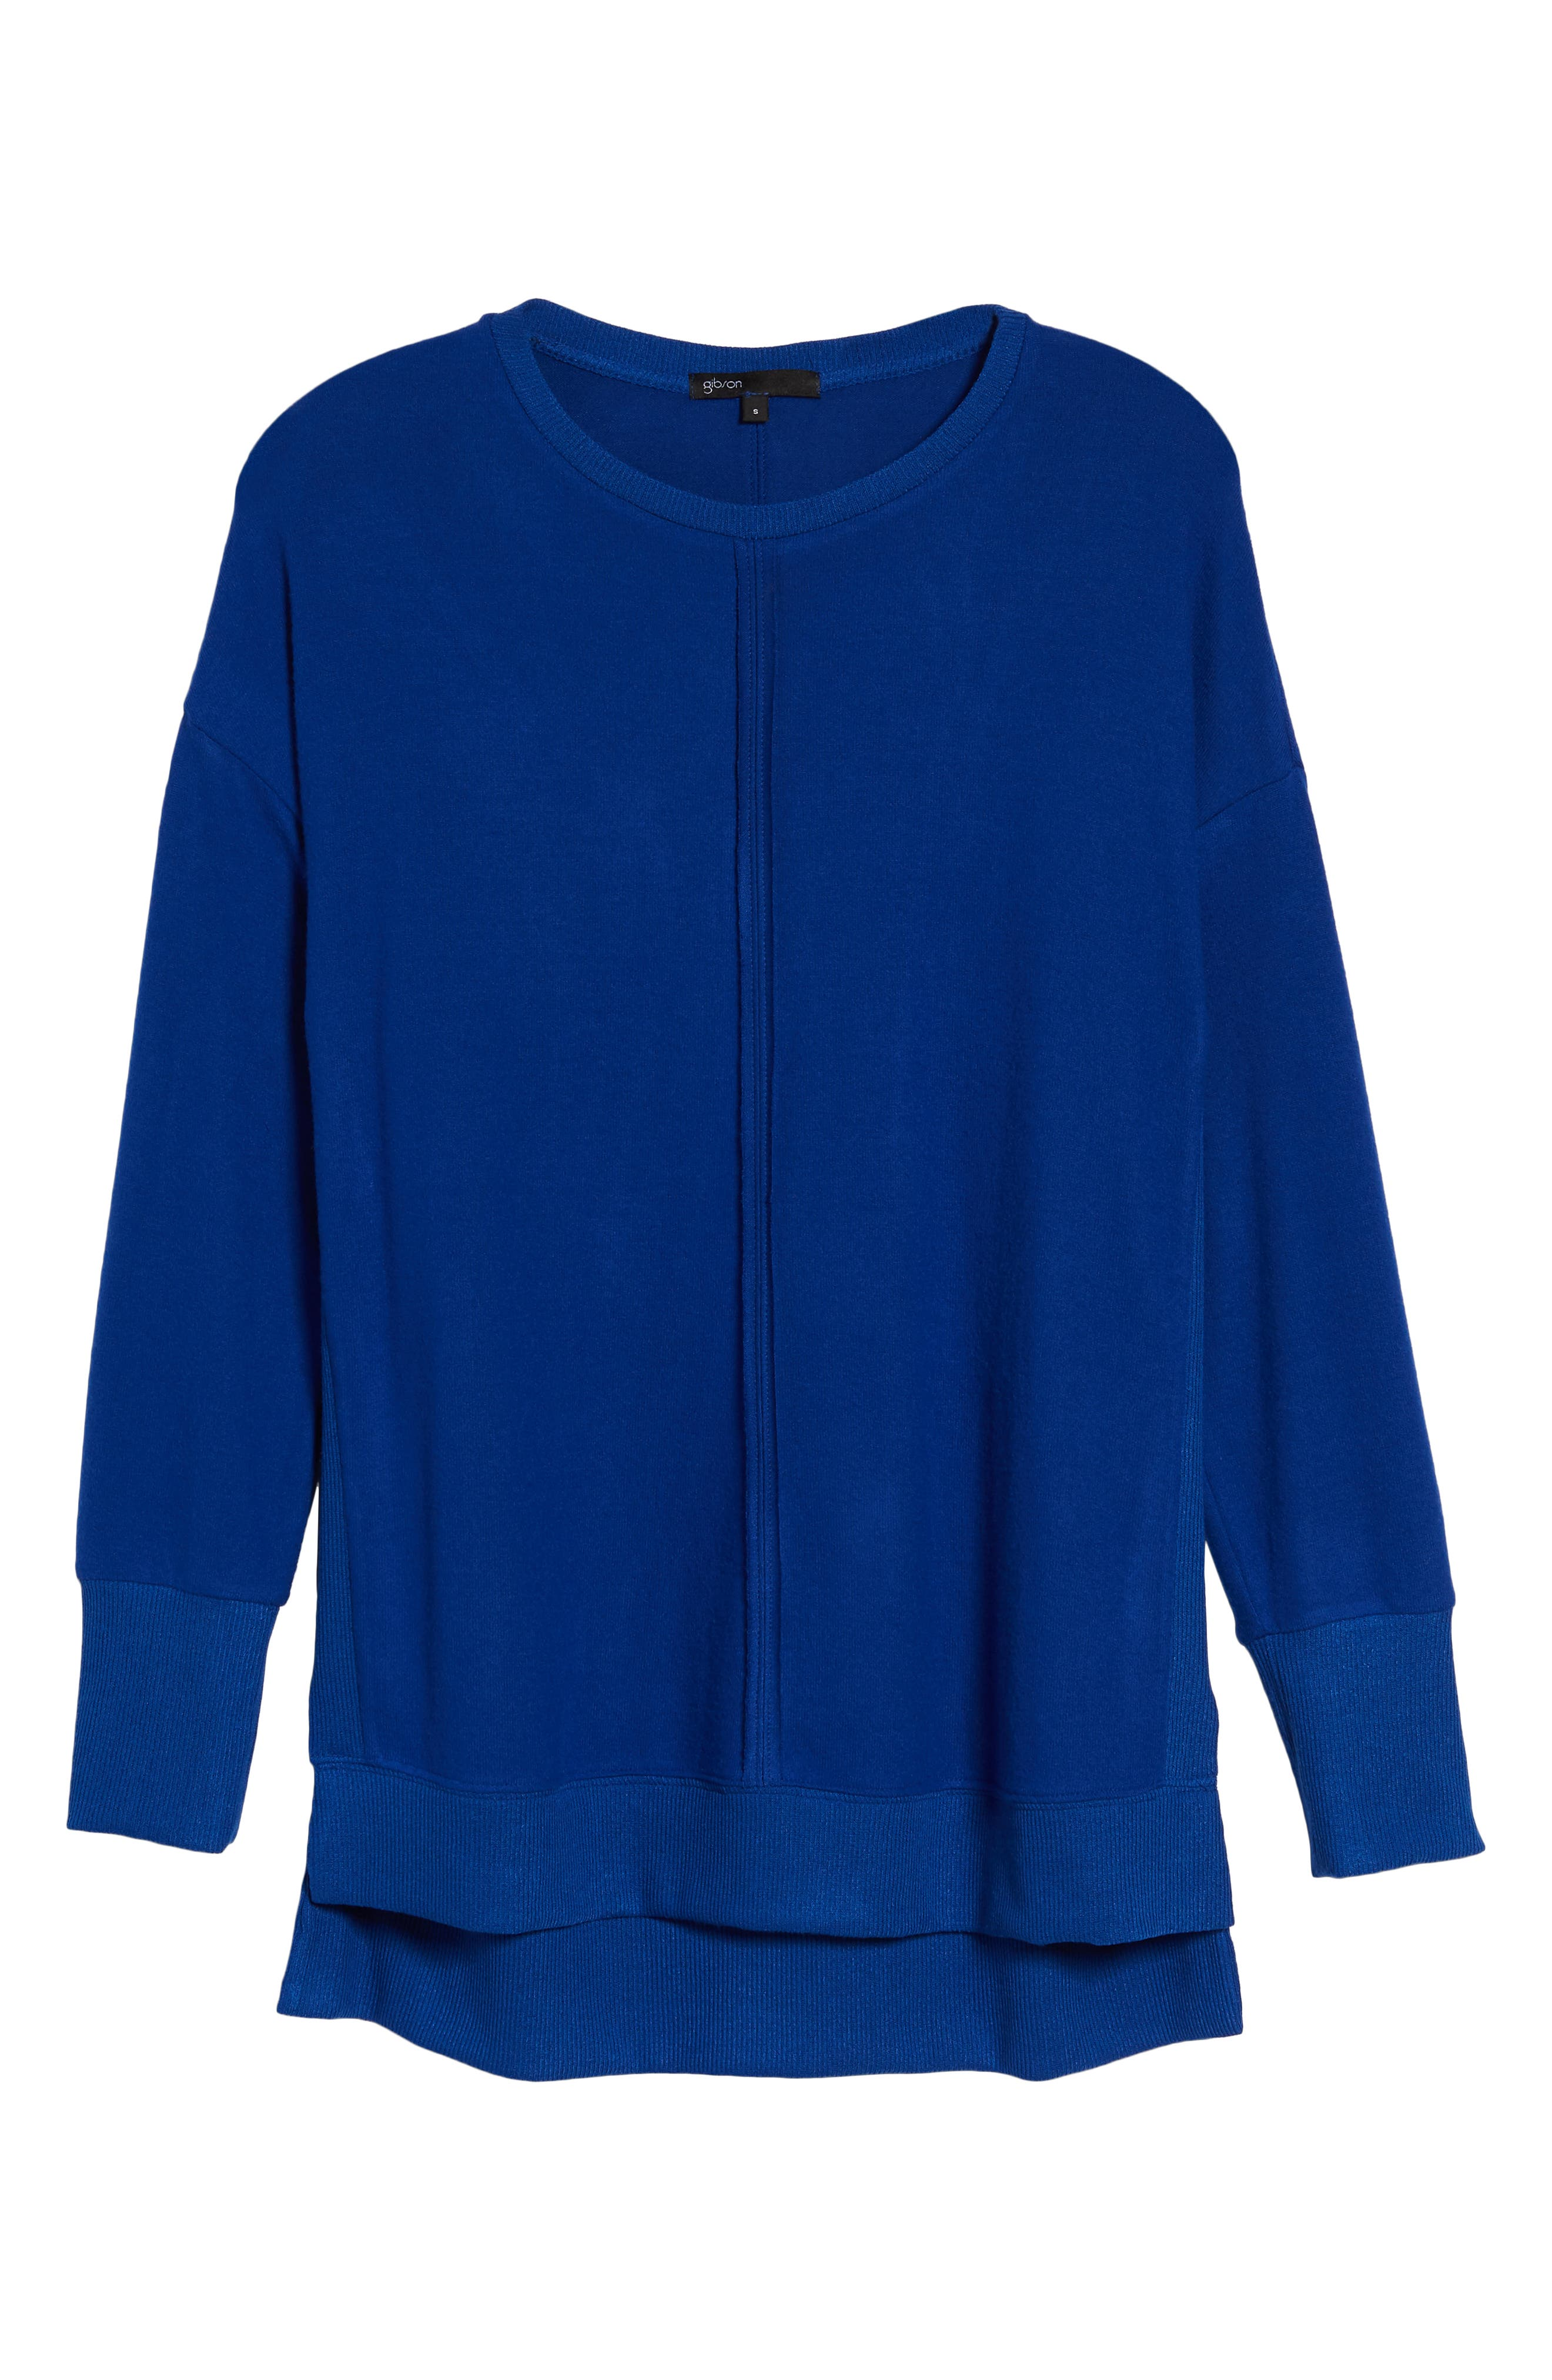 Cozy Fleece Tunic,                             Alternate thumbnail 6, color,                             Blue Surf